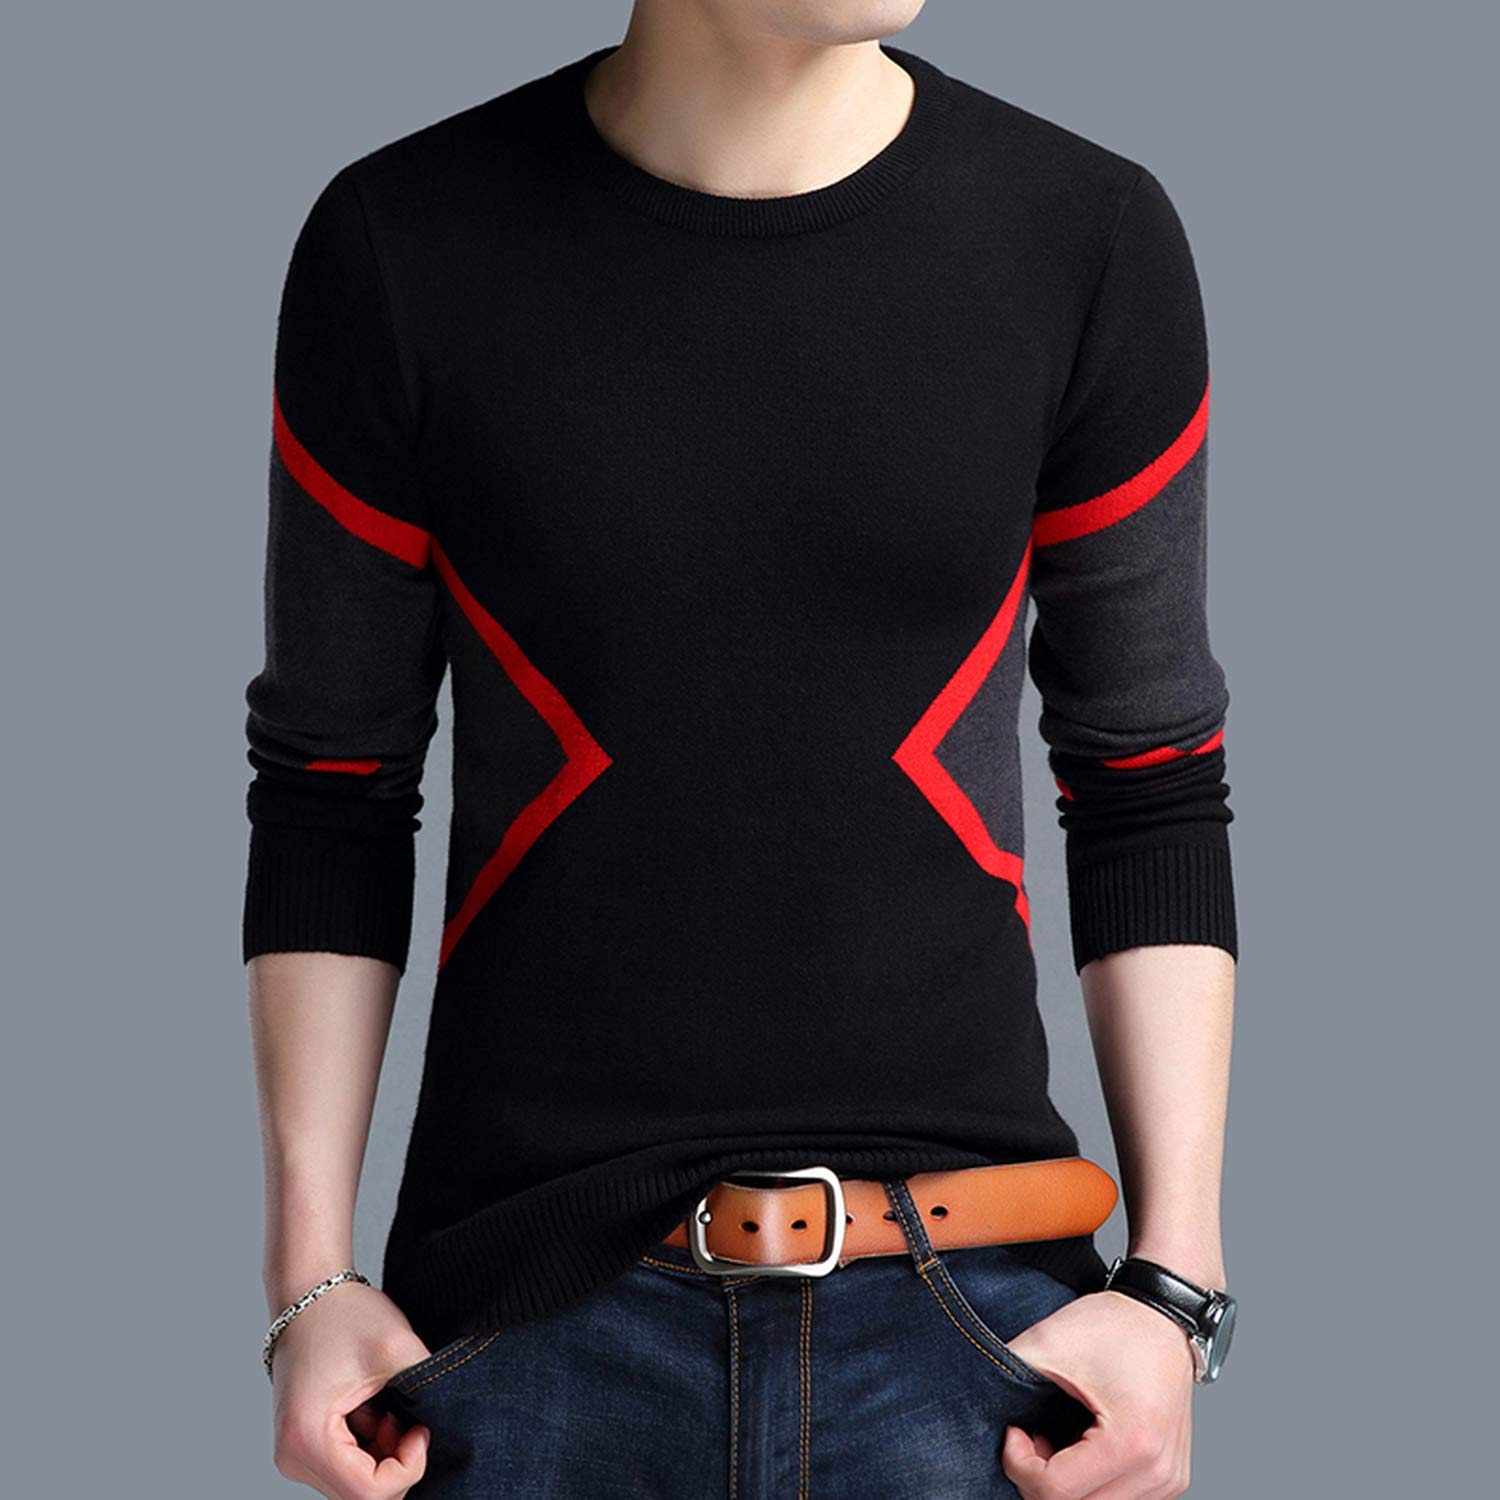 floral hoop 2019 Winter Fashion Mens Sweaters Breathable Slim Pullover Contrast Color Knitted Sweater Men